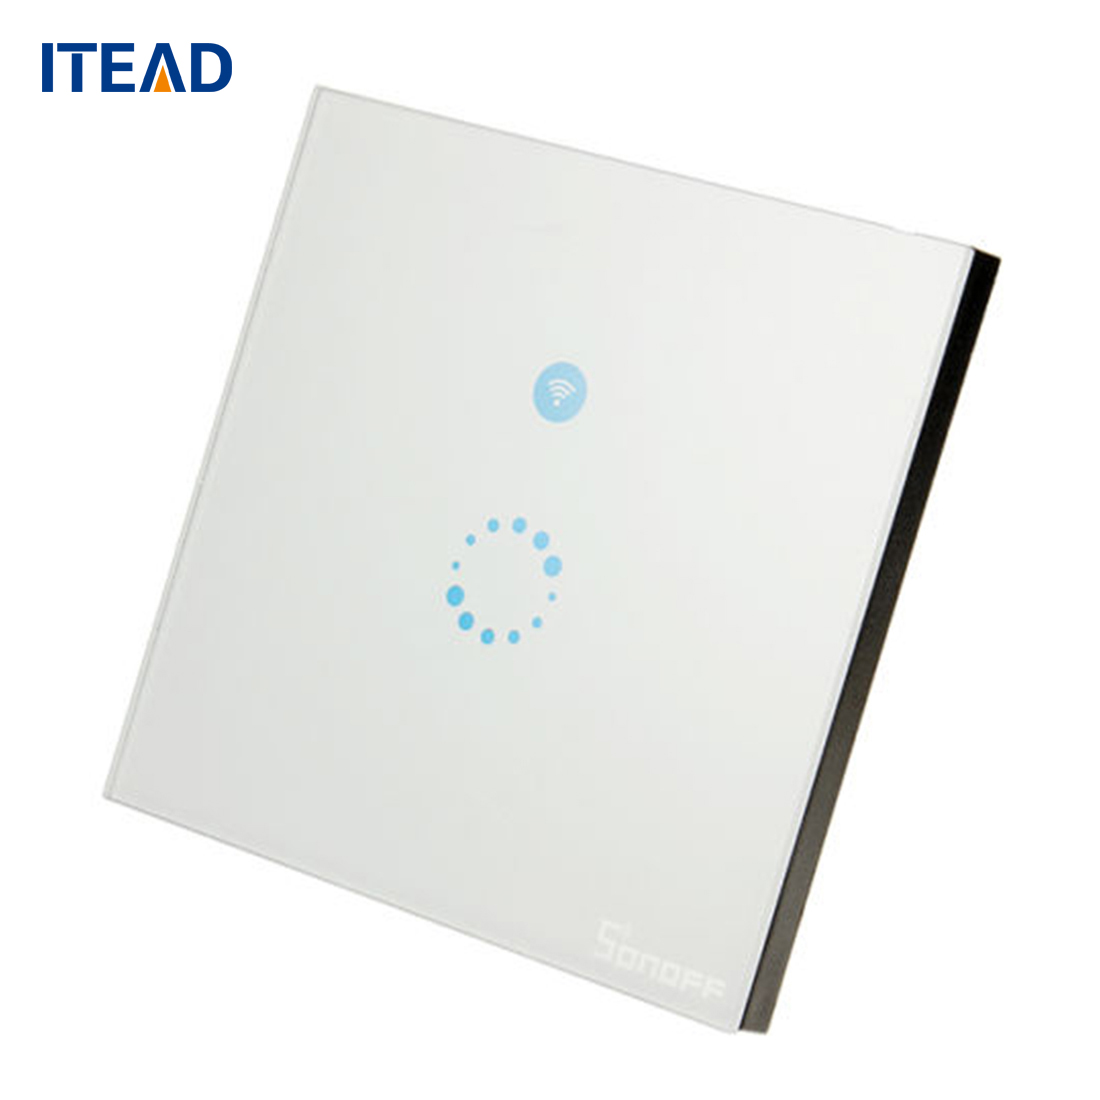 ITEAD Sonoff EU/US Plug Wifi Wireless Touch Remote Control Tempered Glass Switch Panel LED Light Wall Switch itead sonoff 4ch channel remote control wifi switch home automation module wireless timer diy switch